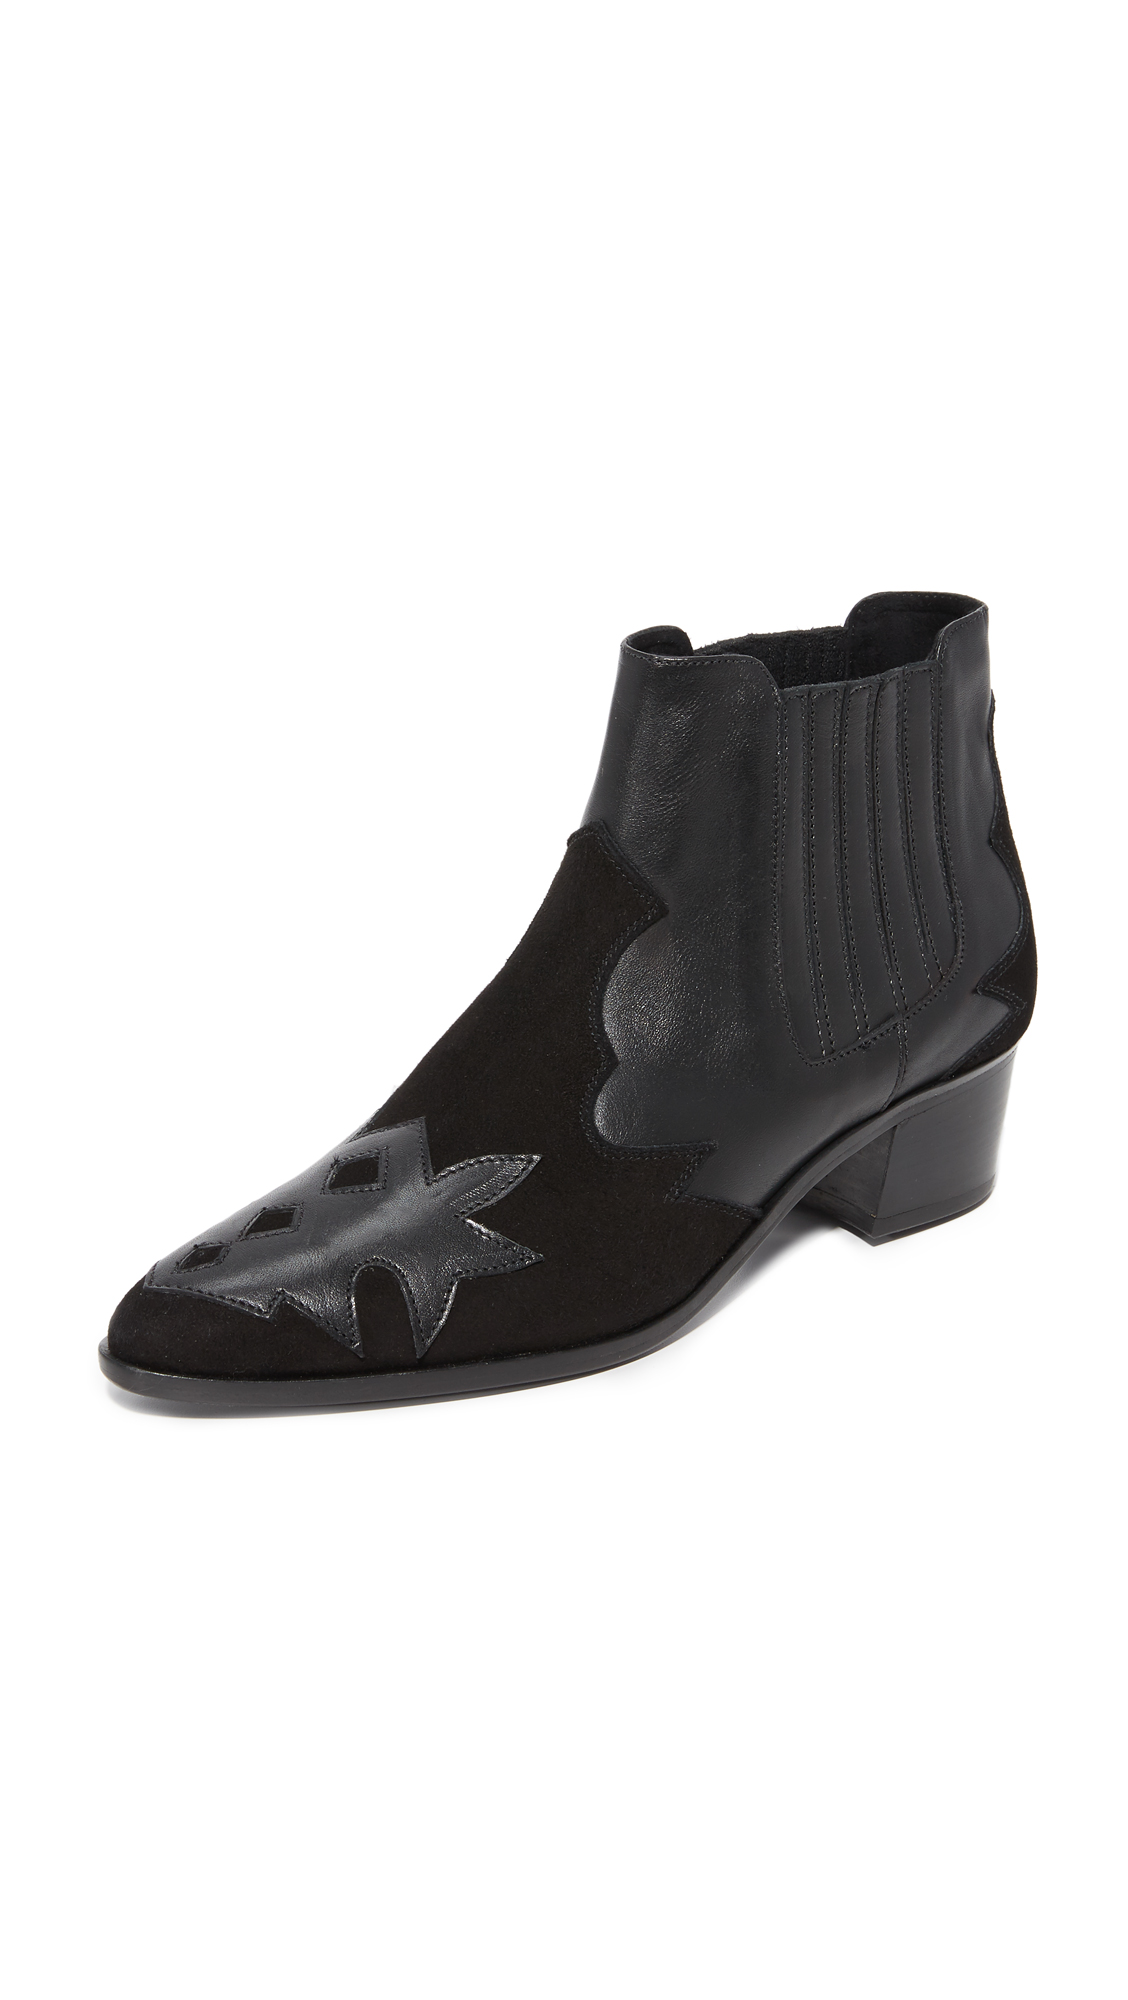 The Archive Bleeker Booties - Black/Black